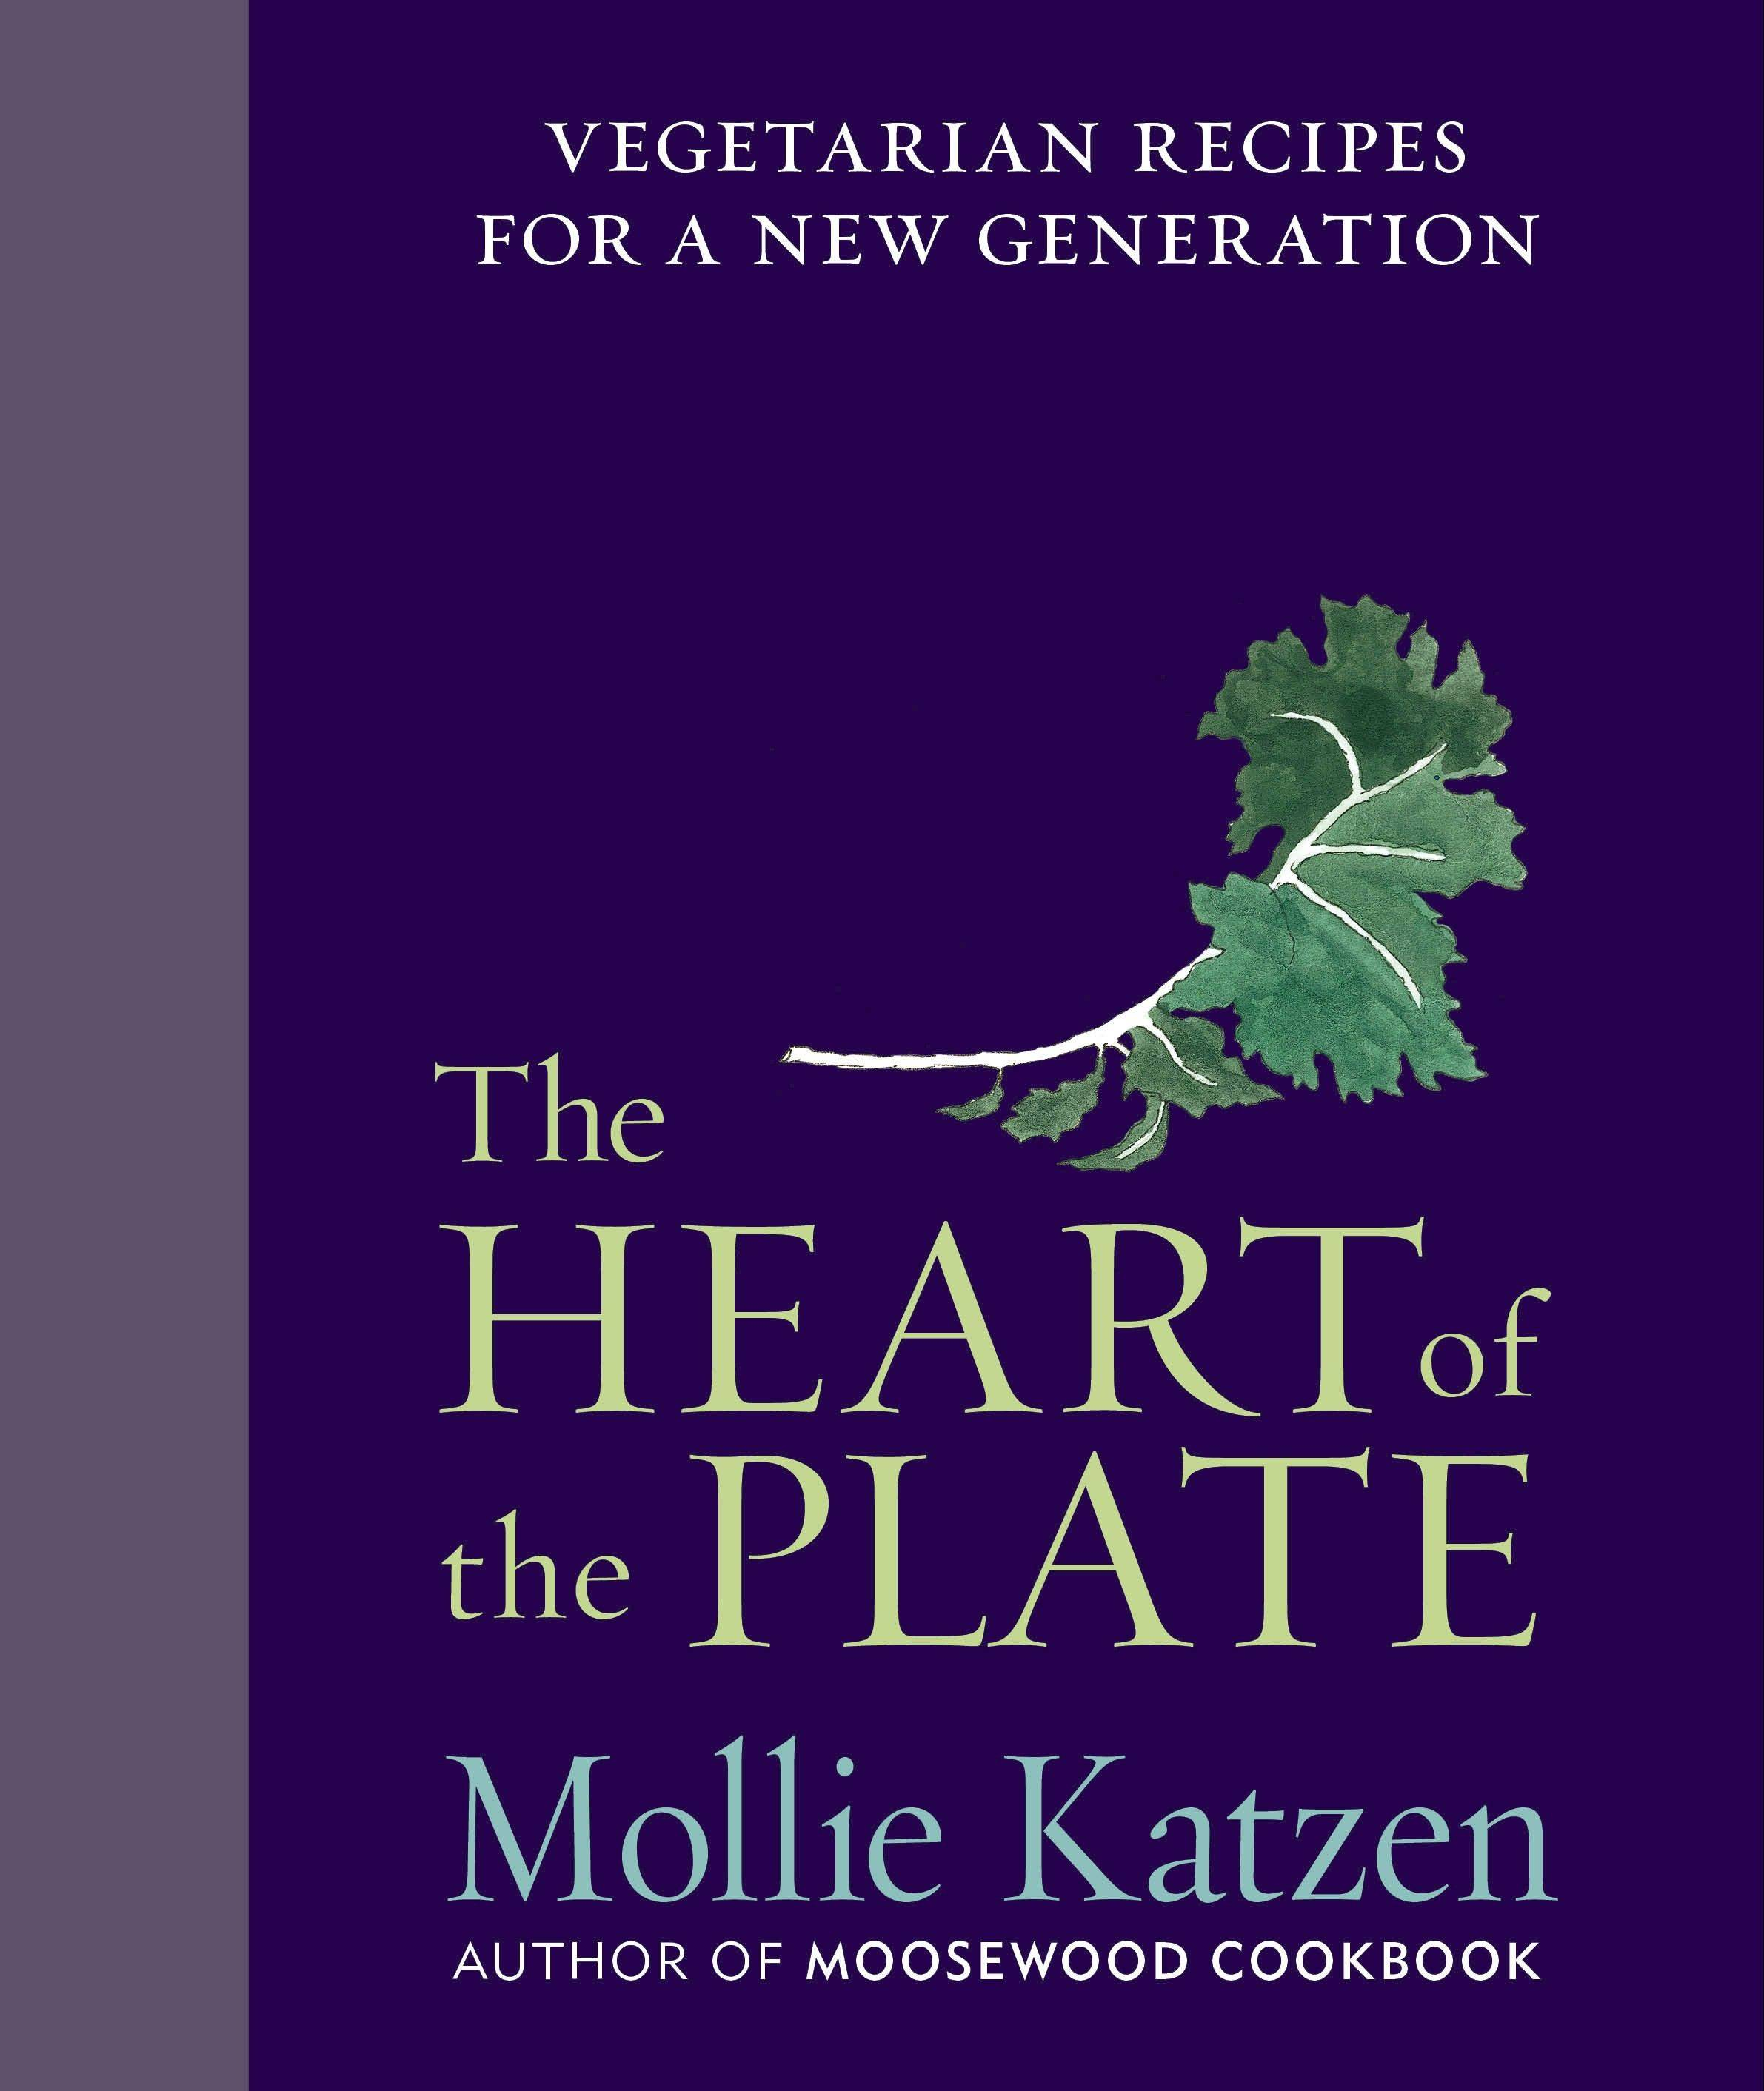 """The Heart of the Plate"" by Mollie Katzen"